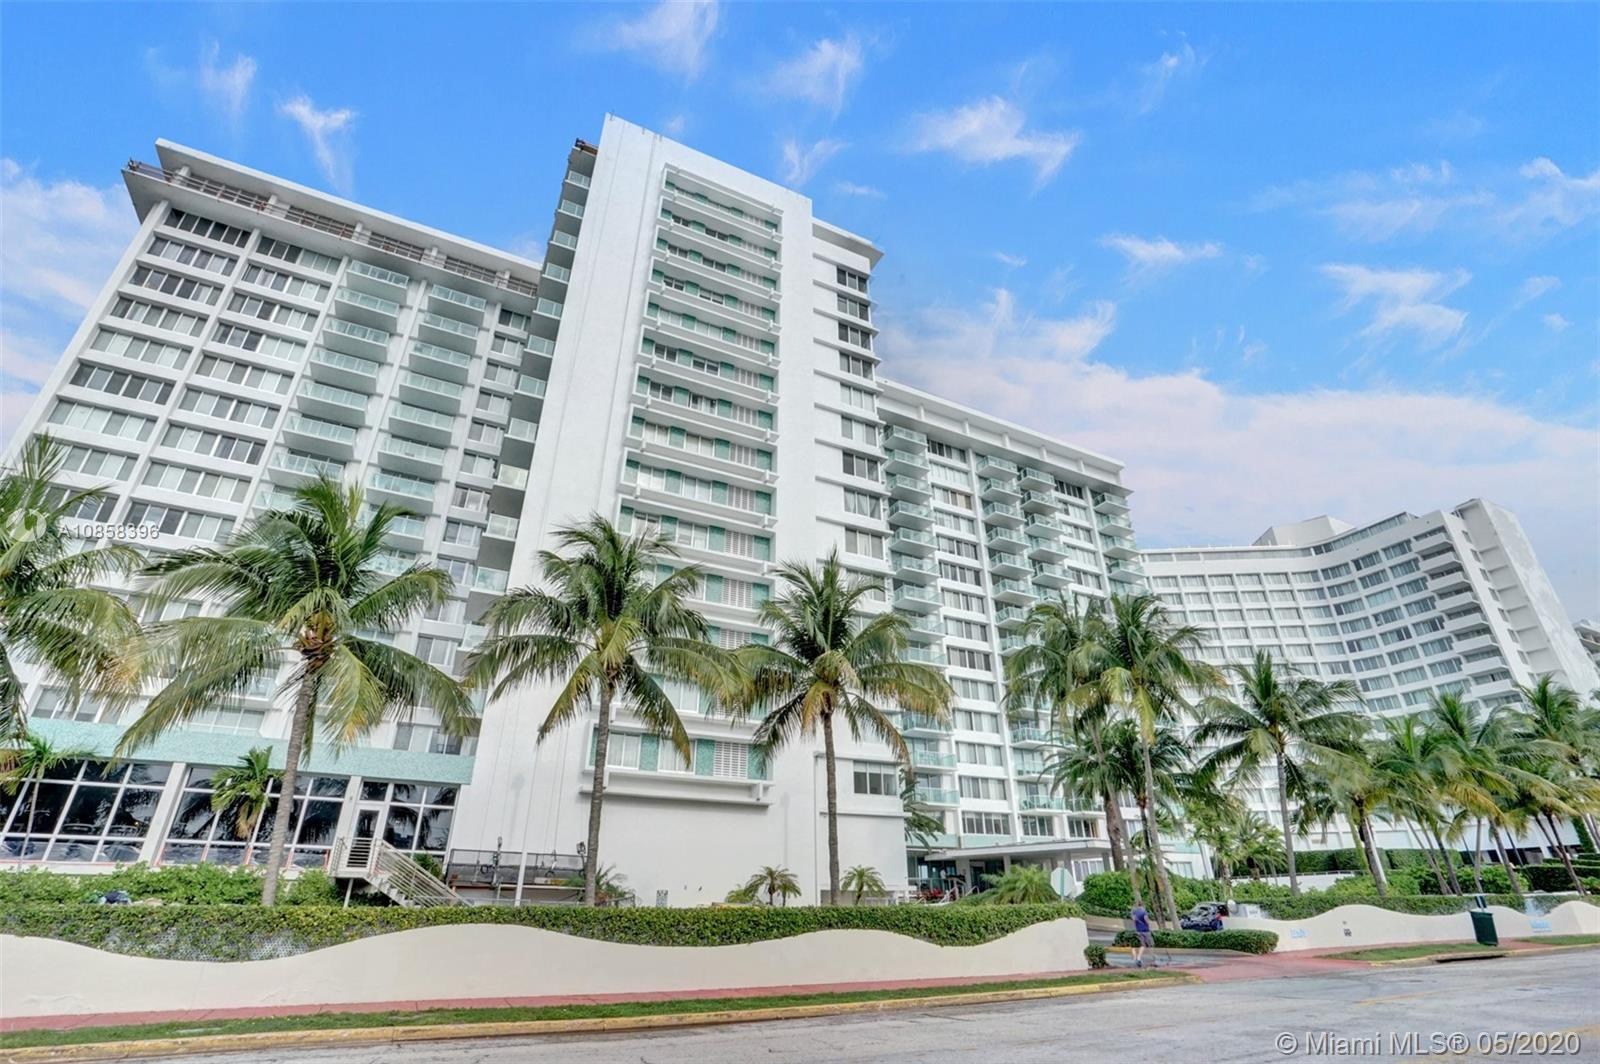 Charming complete renovated 1 bed 1 bath condo with balcony, right on the Bay. Contemporary furnishe